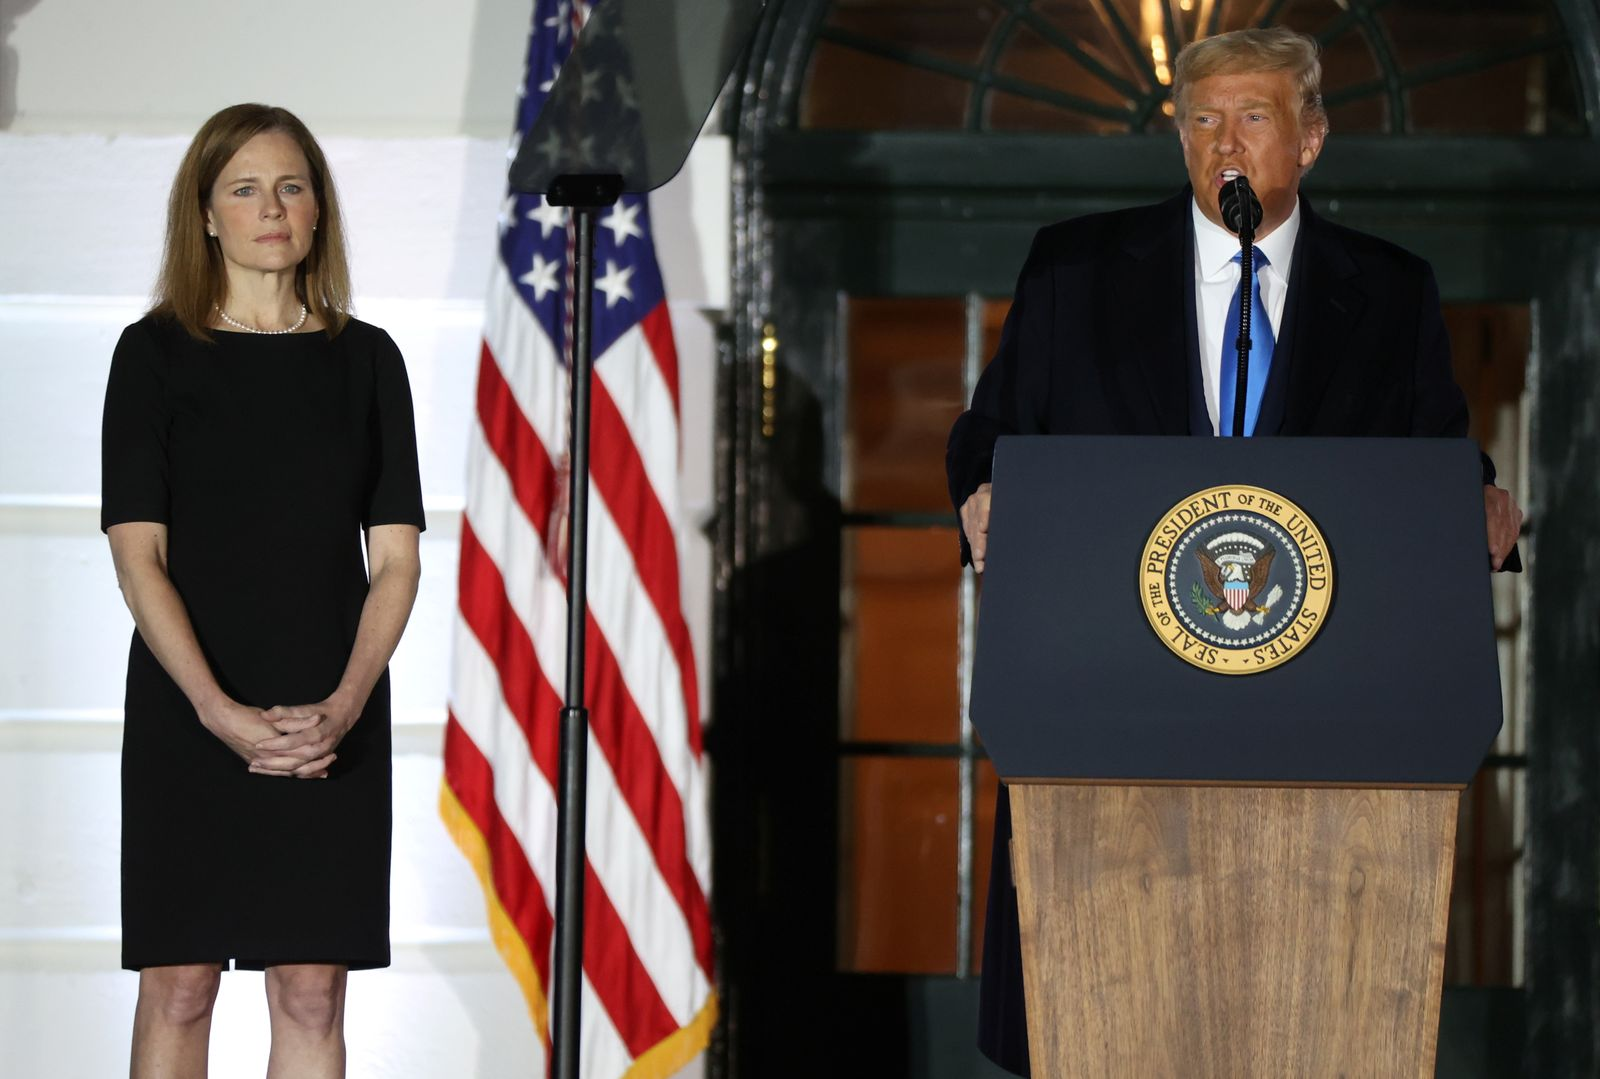 Judge Amy Coney Barrett is sworn in as an associate justice of the U.S. Supreme Court at the White House in Washington